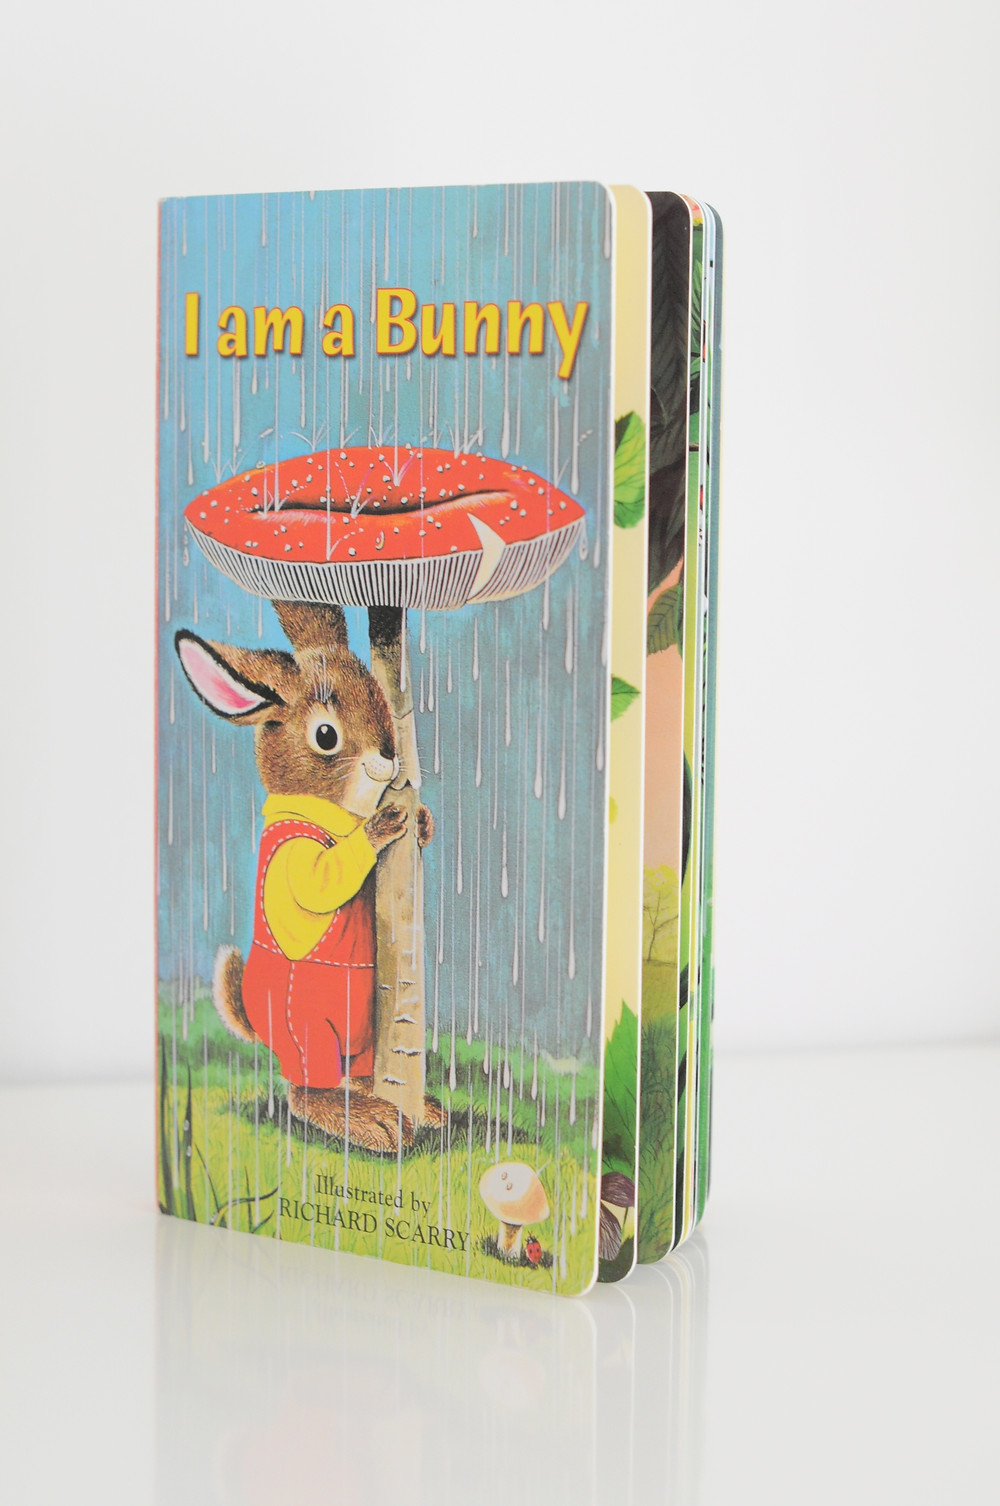 I am a Bunny illustrated by Richard Scarry